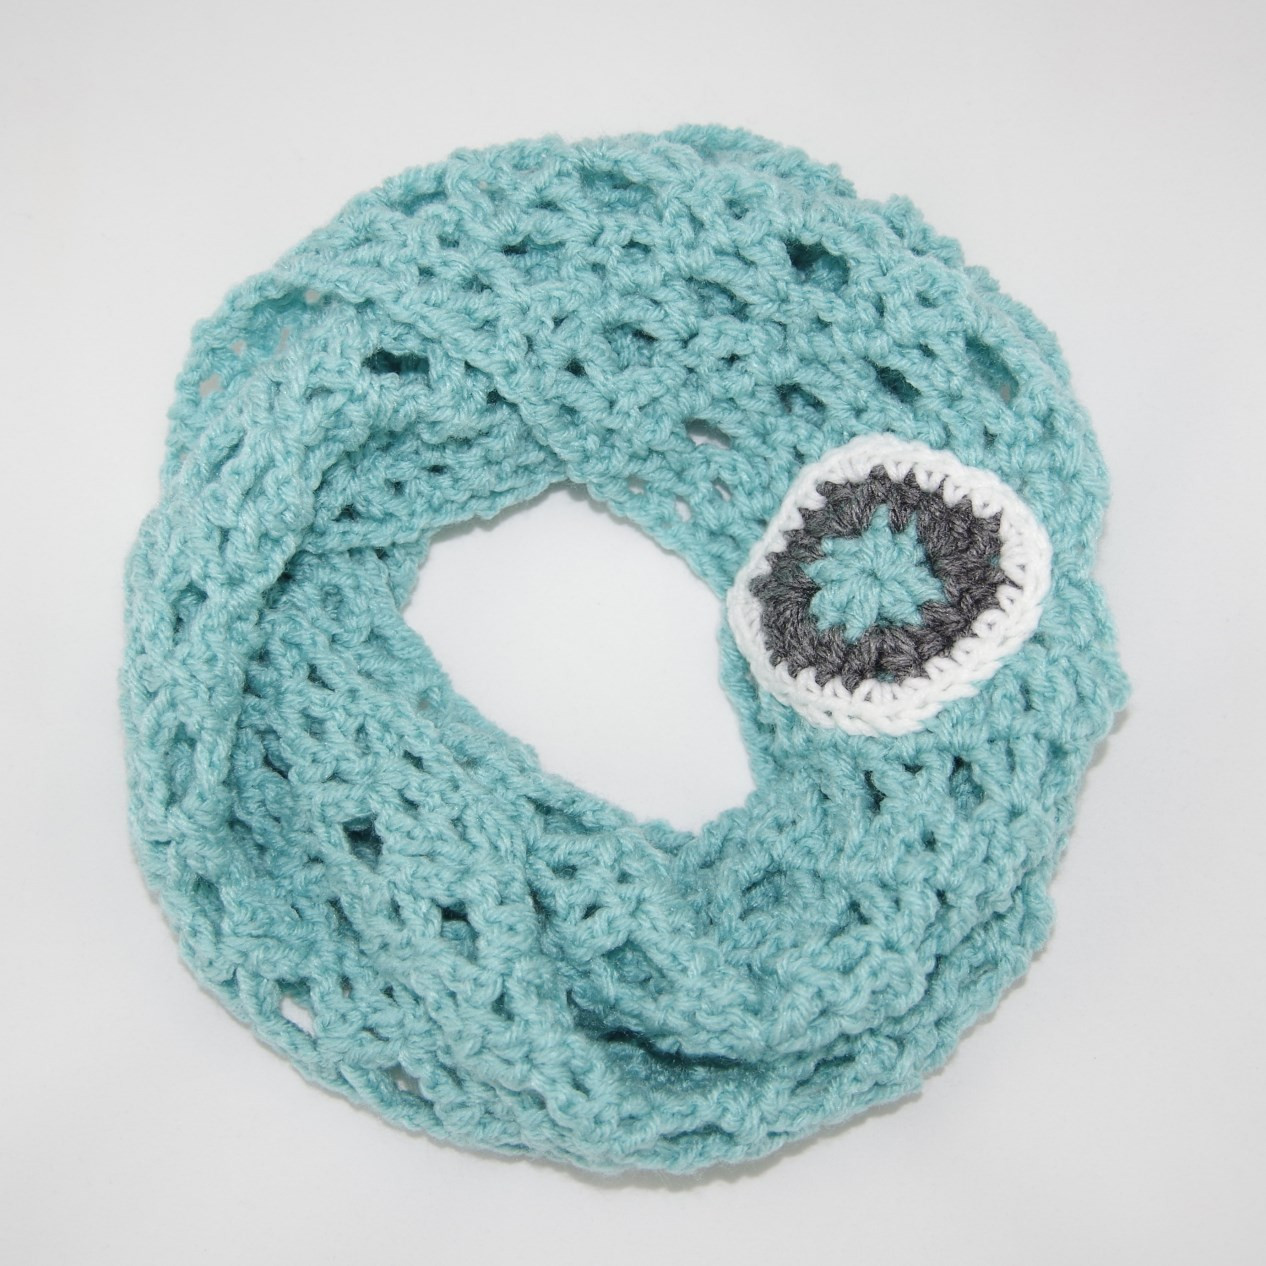 Crochet Wrap Pattern Inspirational How to Crochet A Scarf for Beginners Step by Step Slowly Of Attractive 42 Pics Crochet Wrap Pattern